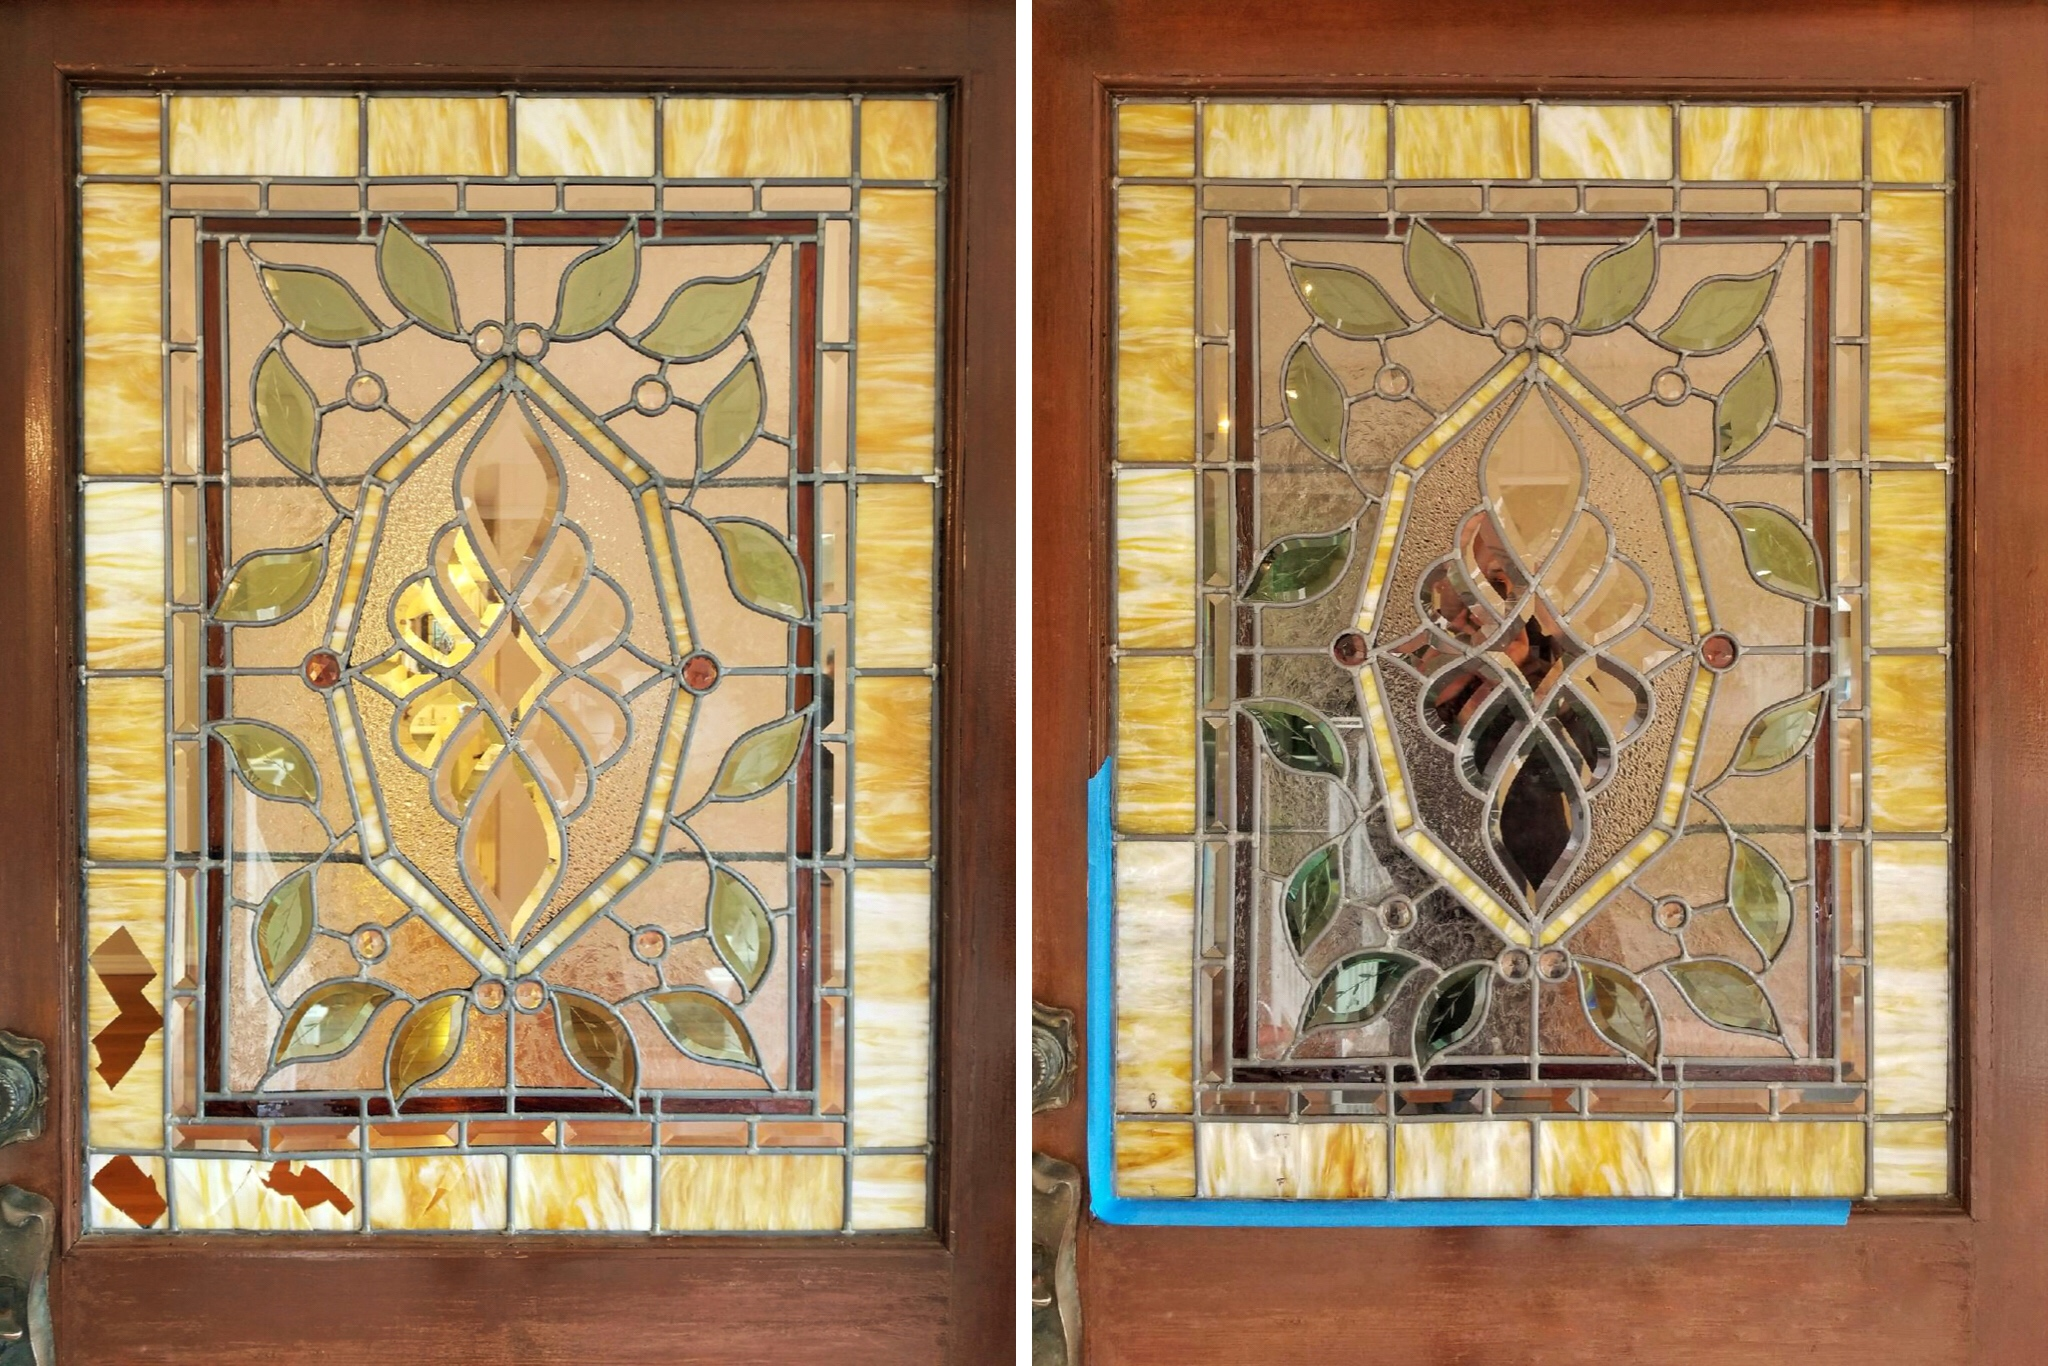 In a quick 4-hour visit, we replaced these 5 pieces of broken glass in the front door of this rental property.